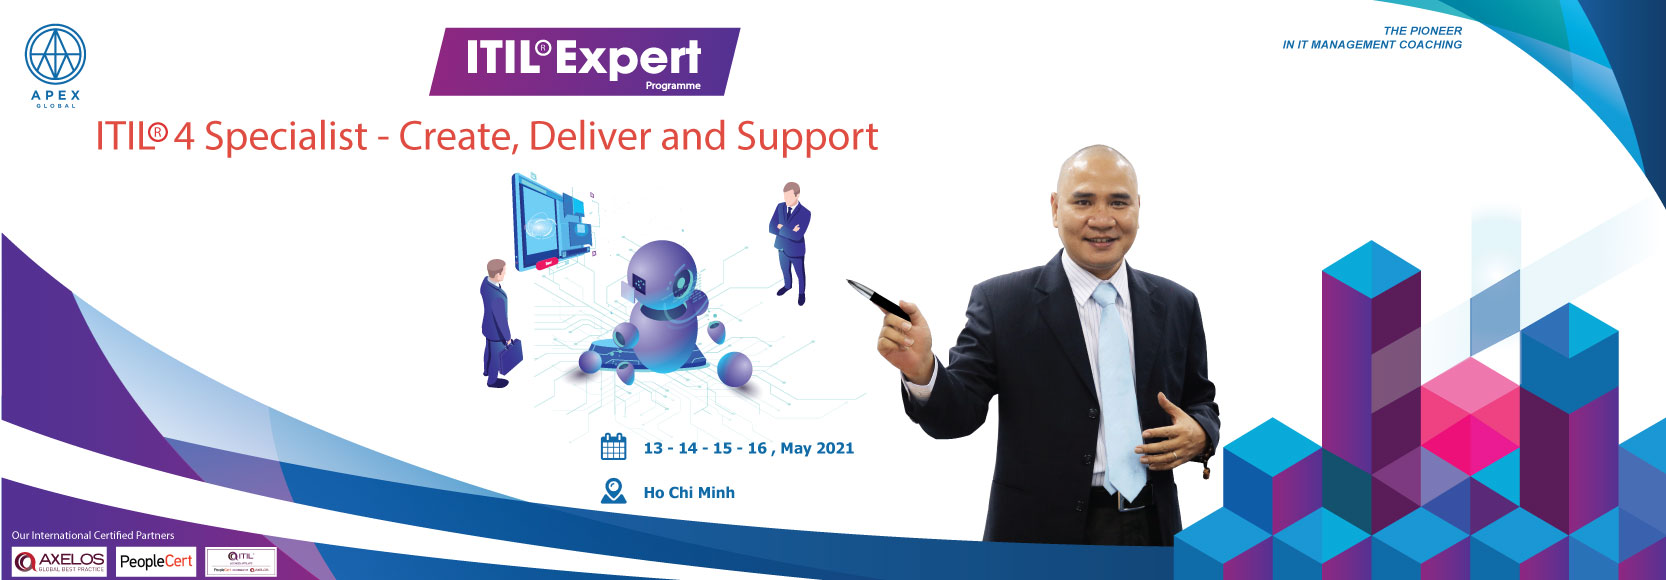 ITIL-4-Specialist-Create-Deliver-and-Support